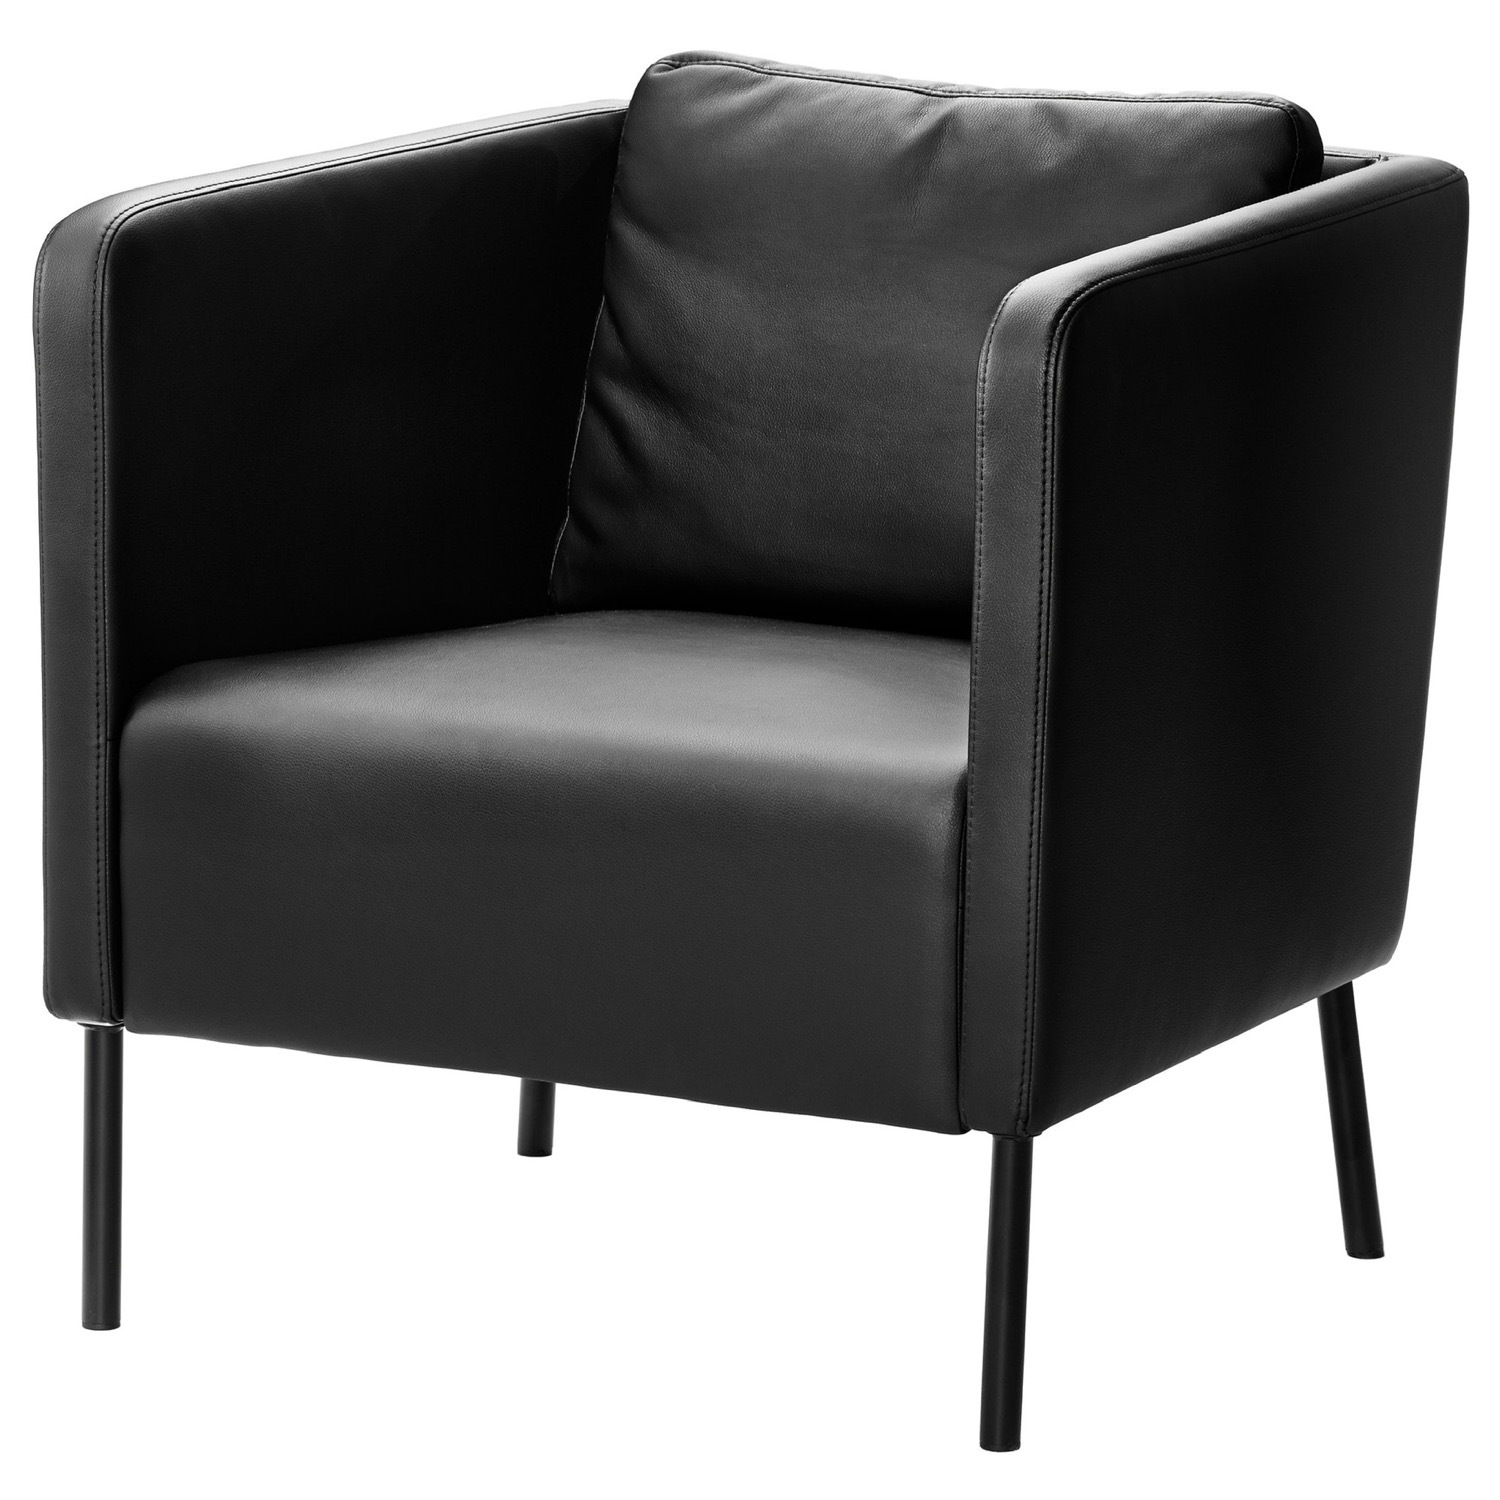 IKEA Black Leather Chair - image-1